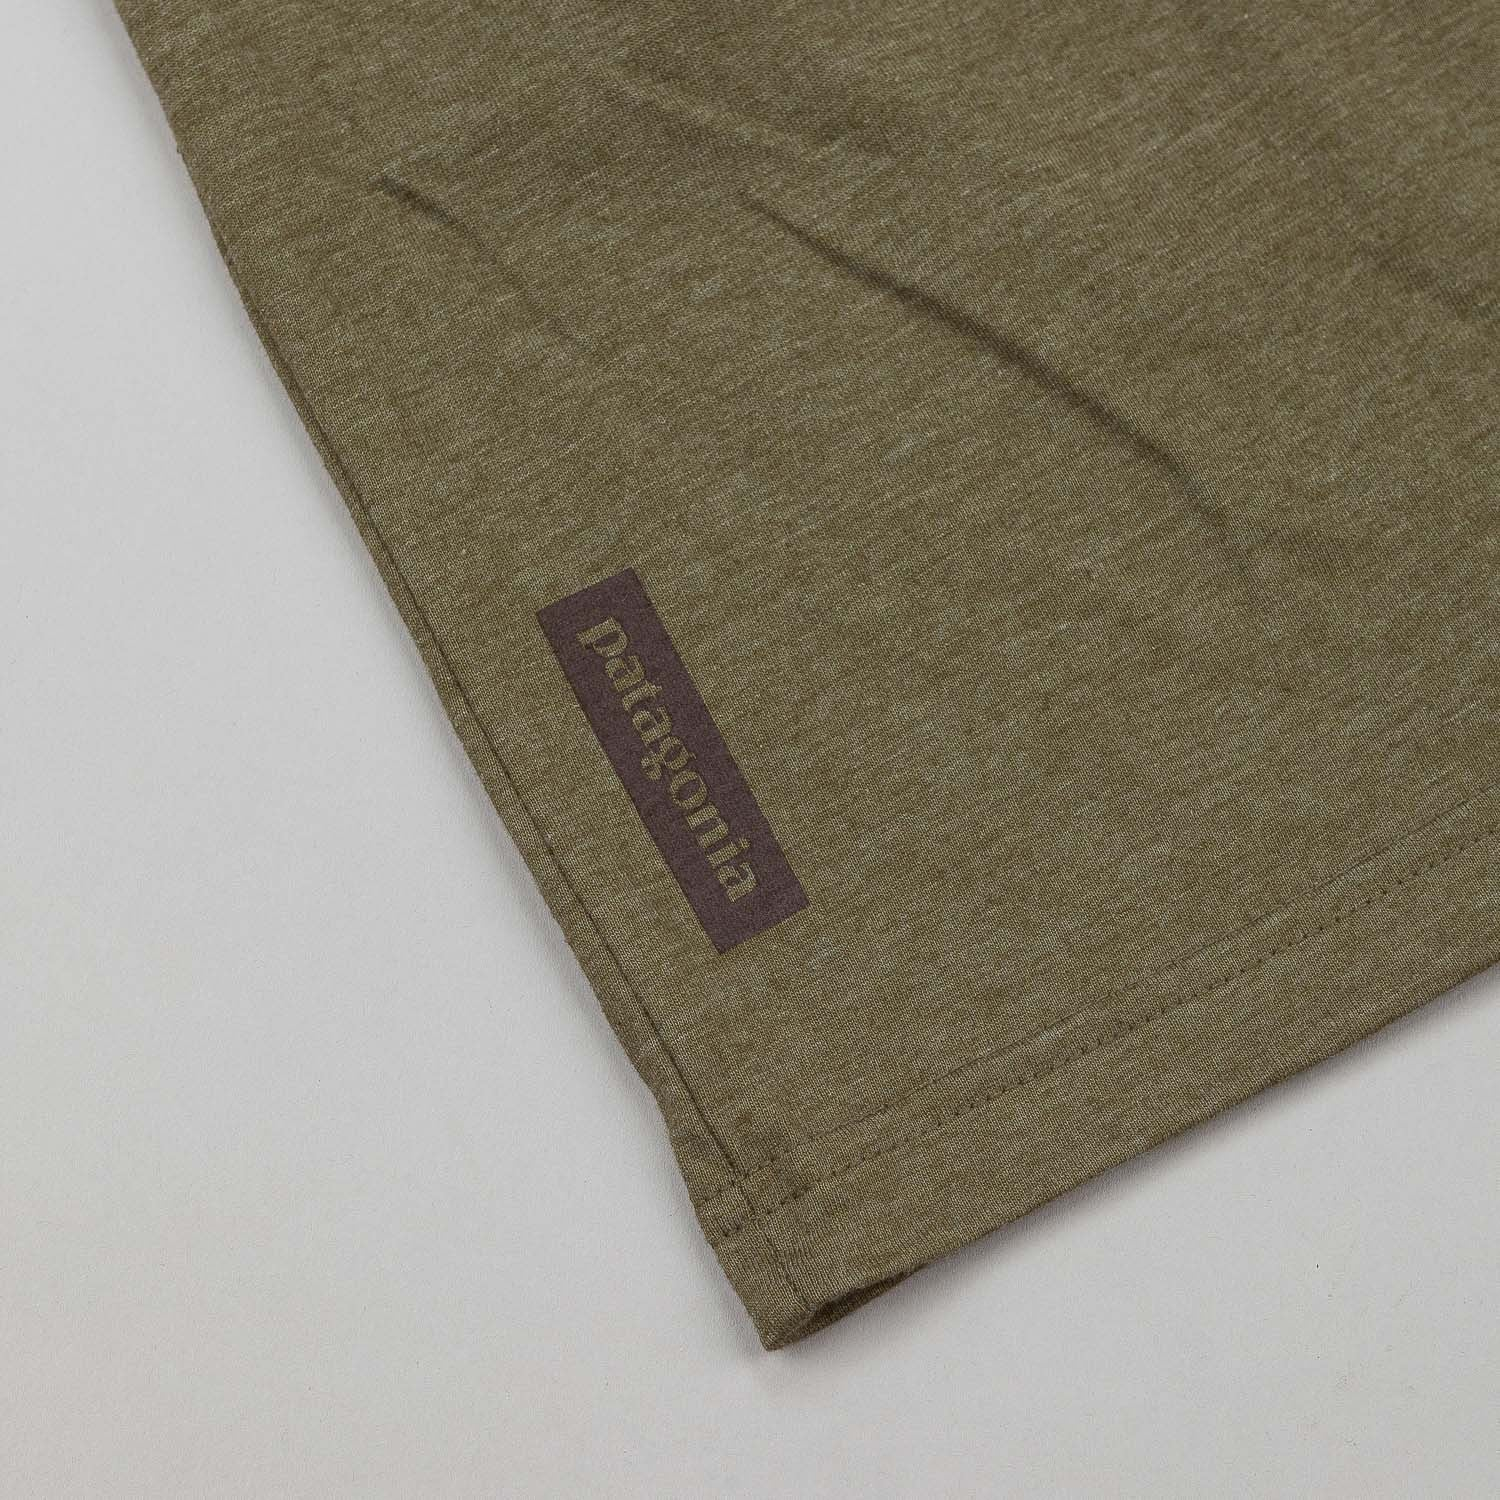 Patagonia Tent Life T-Shirt - Fatigue Green